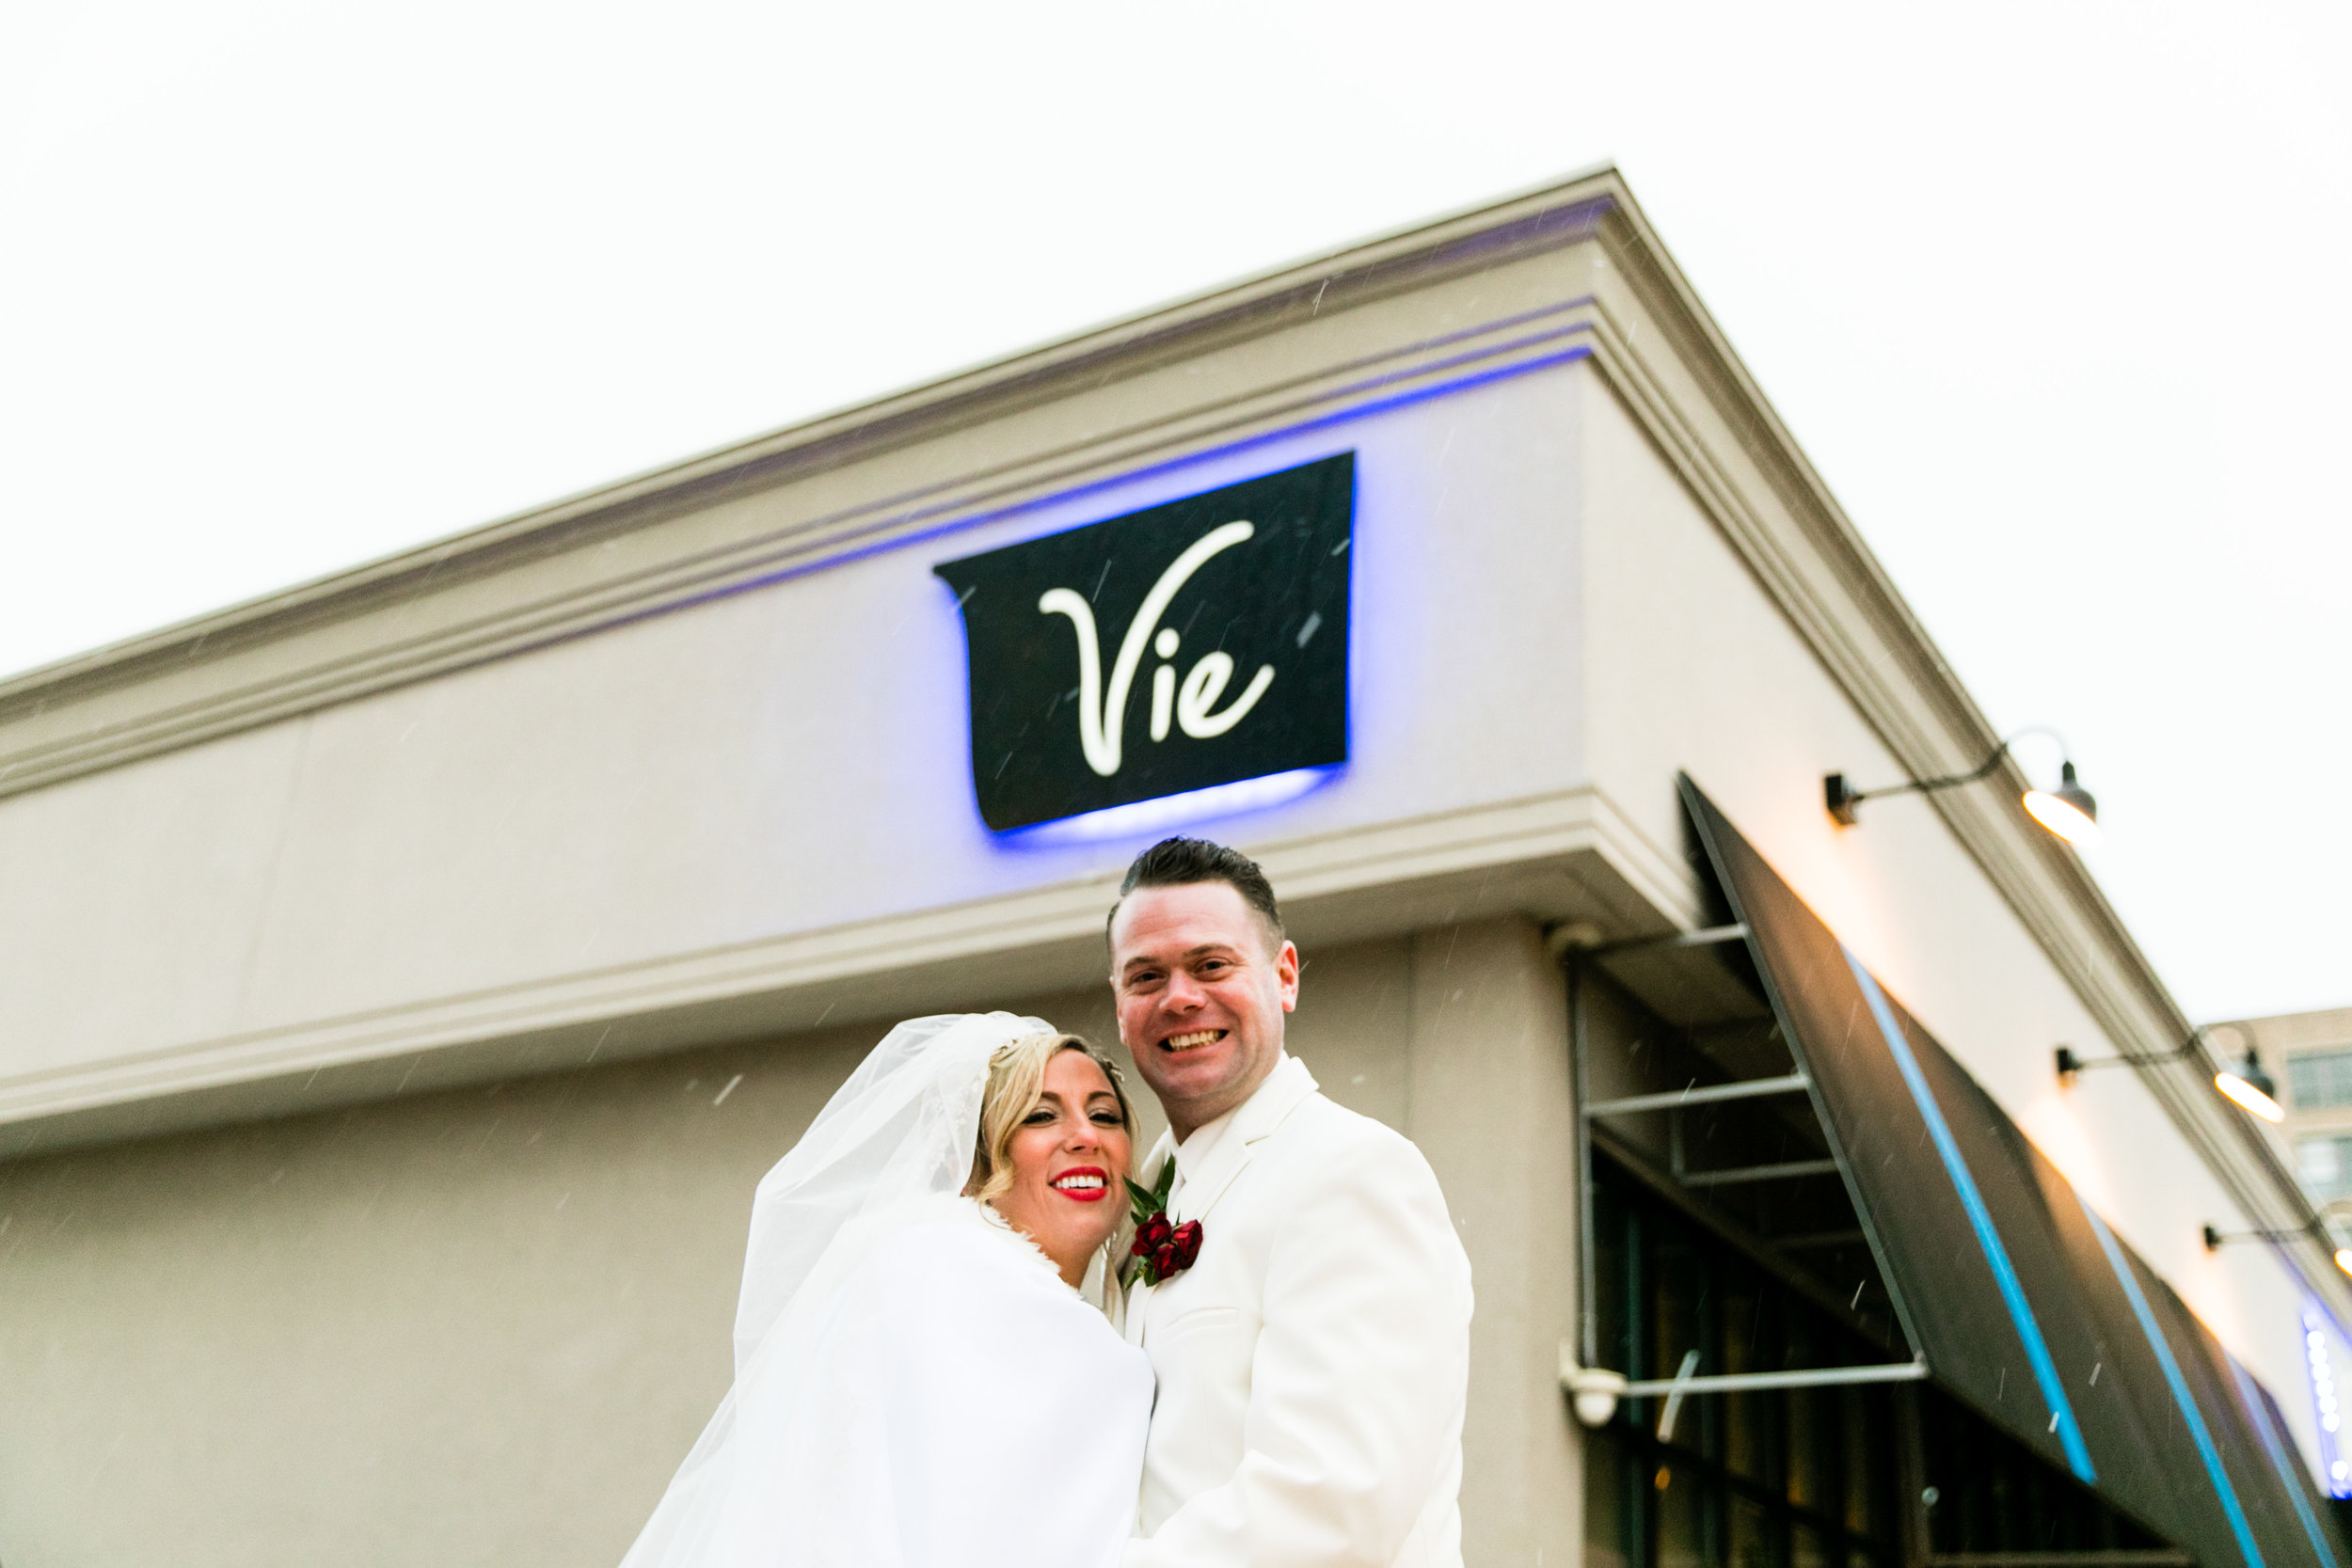 VIE WEDDING PHOTOS - CESCAPHE EVENT GROUP - LOVESTRUCK PICTURES -094.jpg